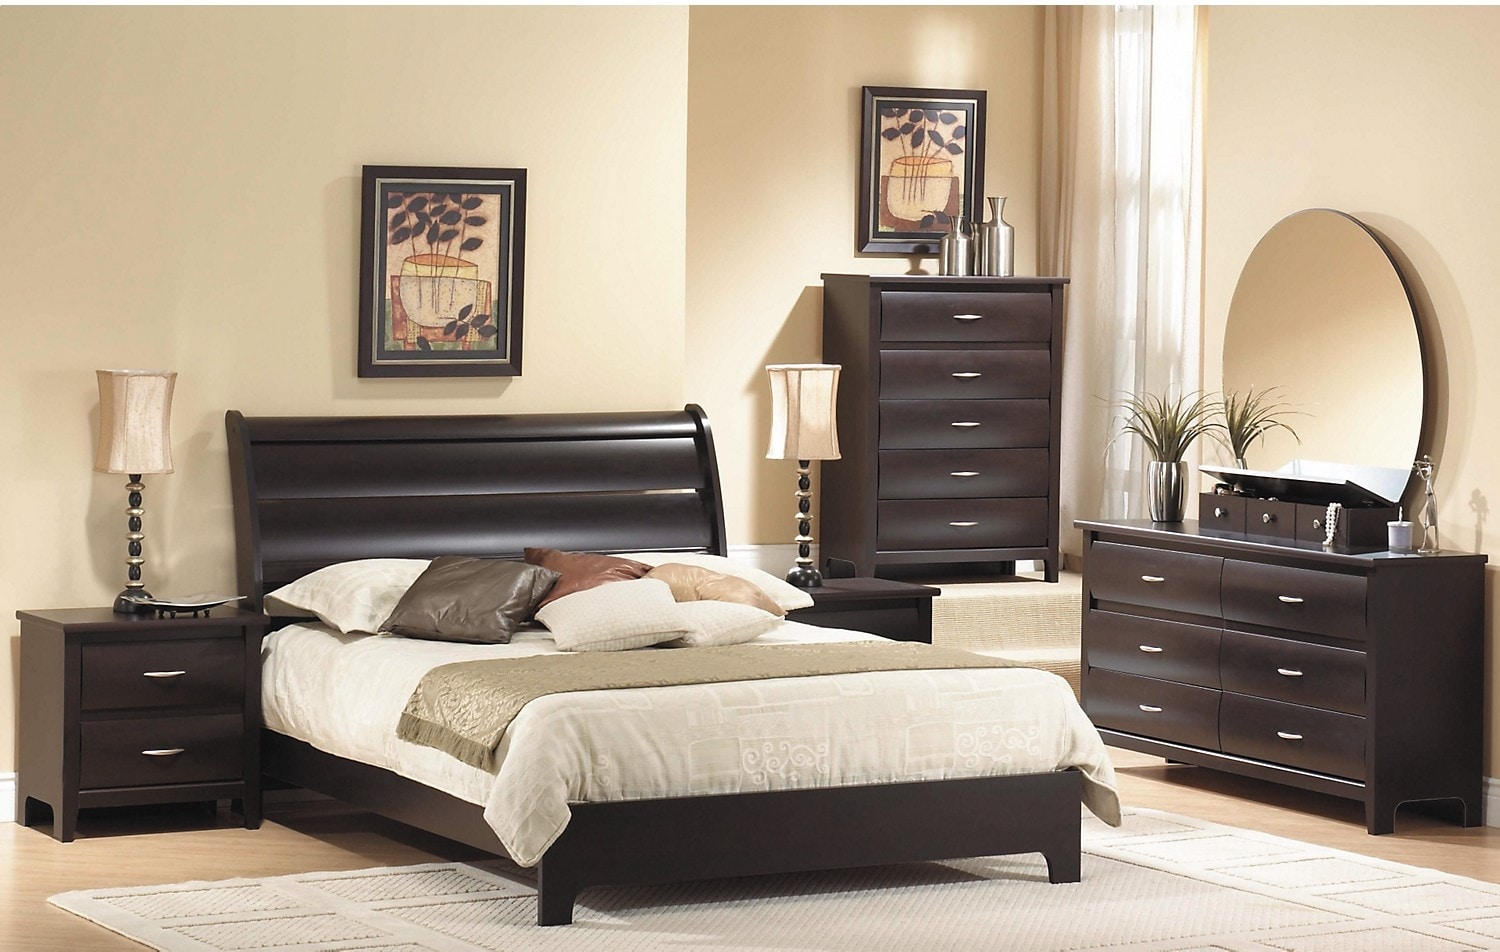 Bedroom Furniture - Mocha Queen Panel Bed